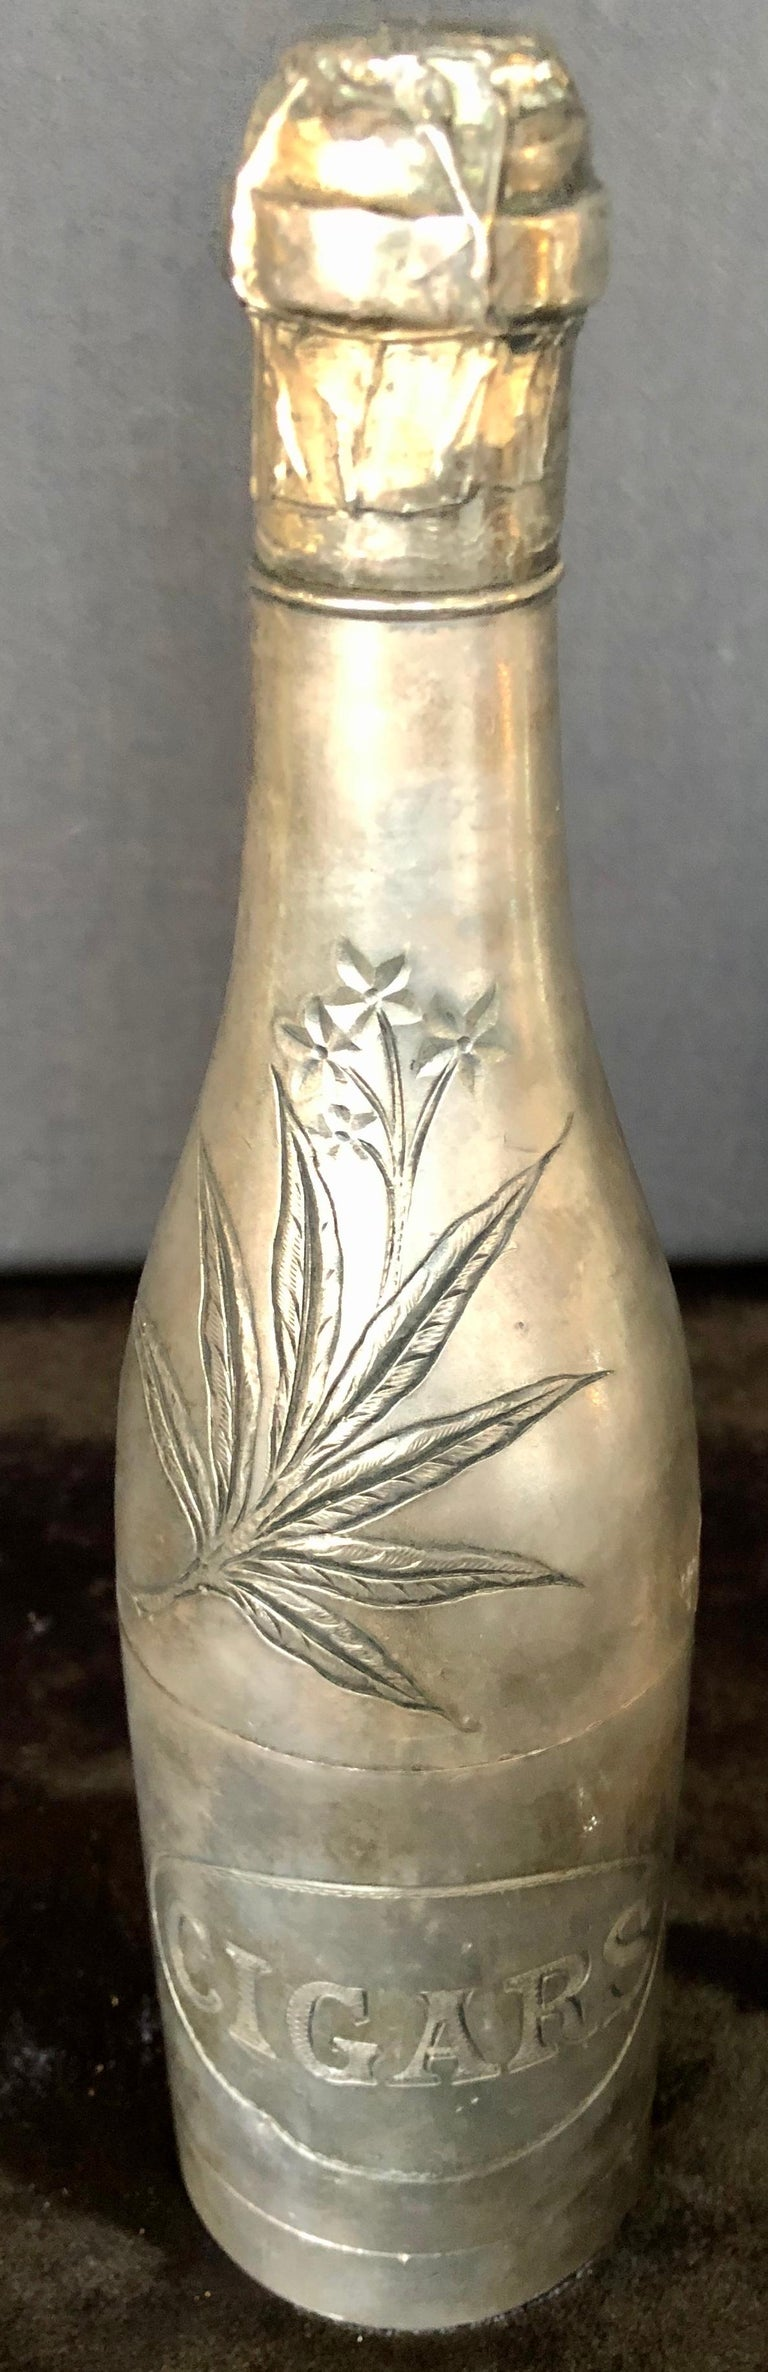 Folk Art Champagne Bottle Cigar Holder Pairpoint Manufacturing.Co. Part of a Large Collec For Sale